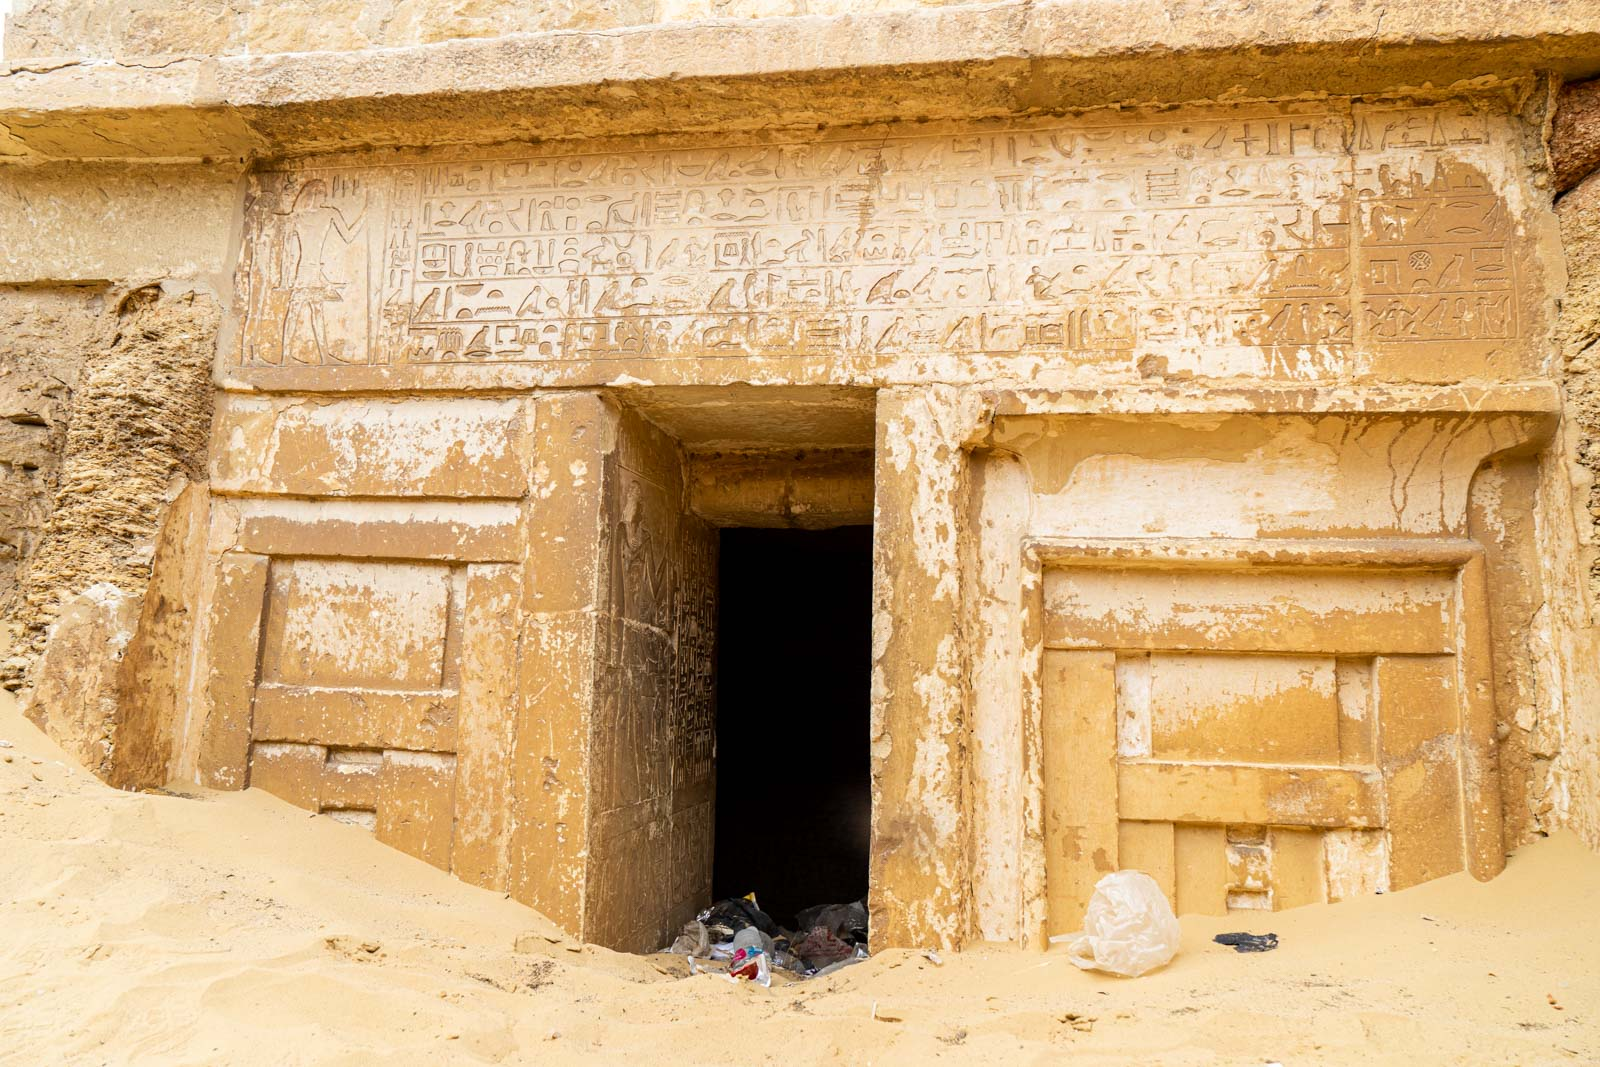 Tombs at Saqqara, Egypt